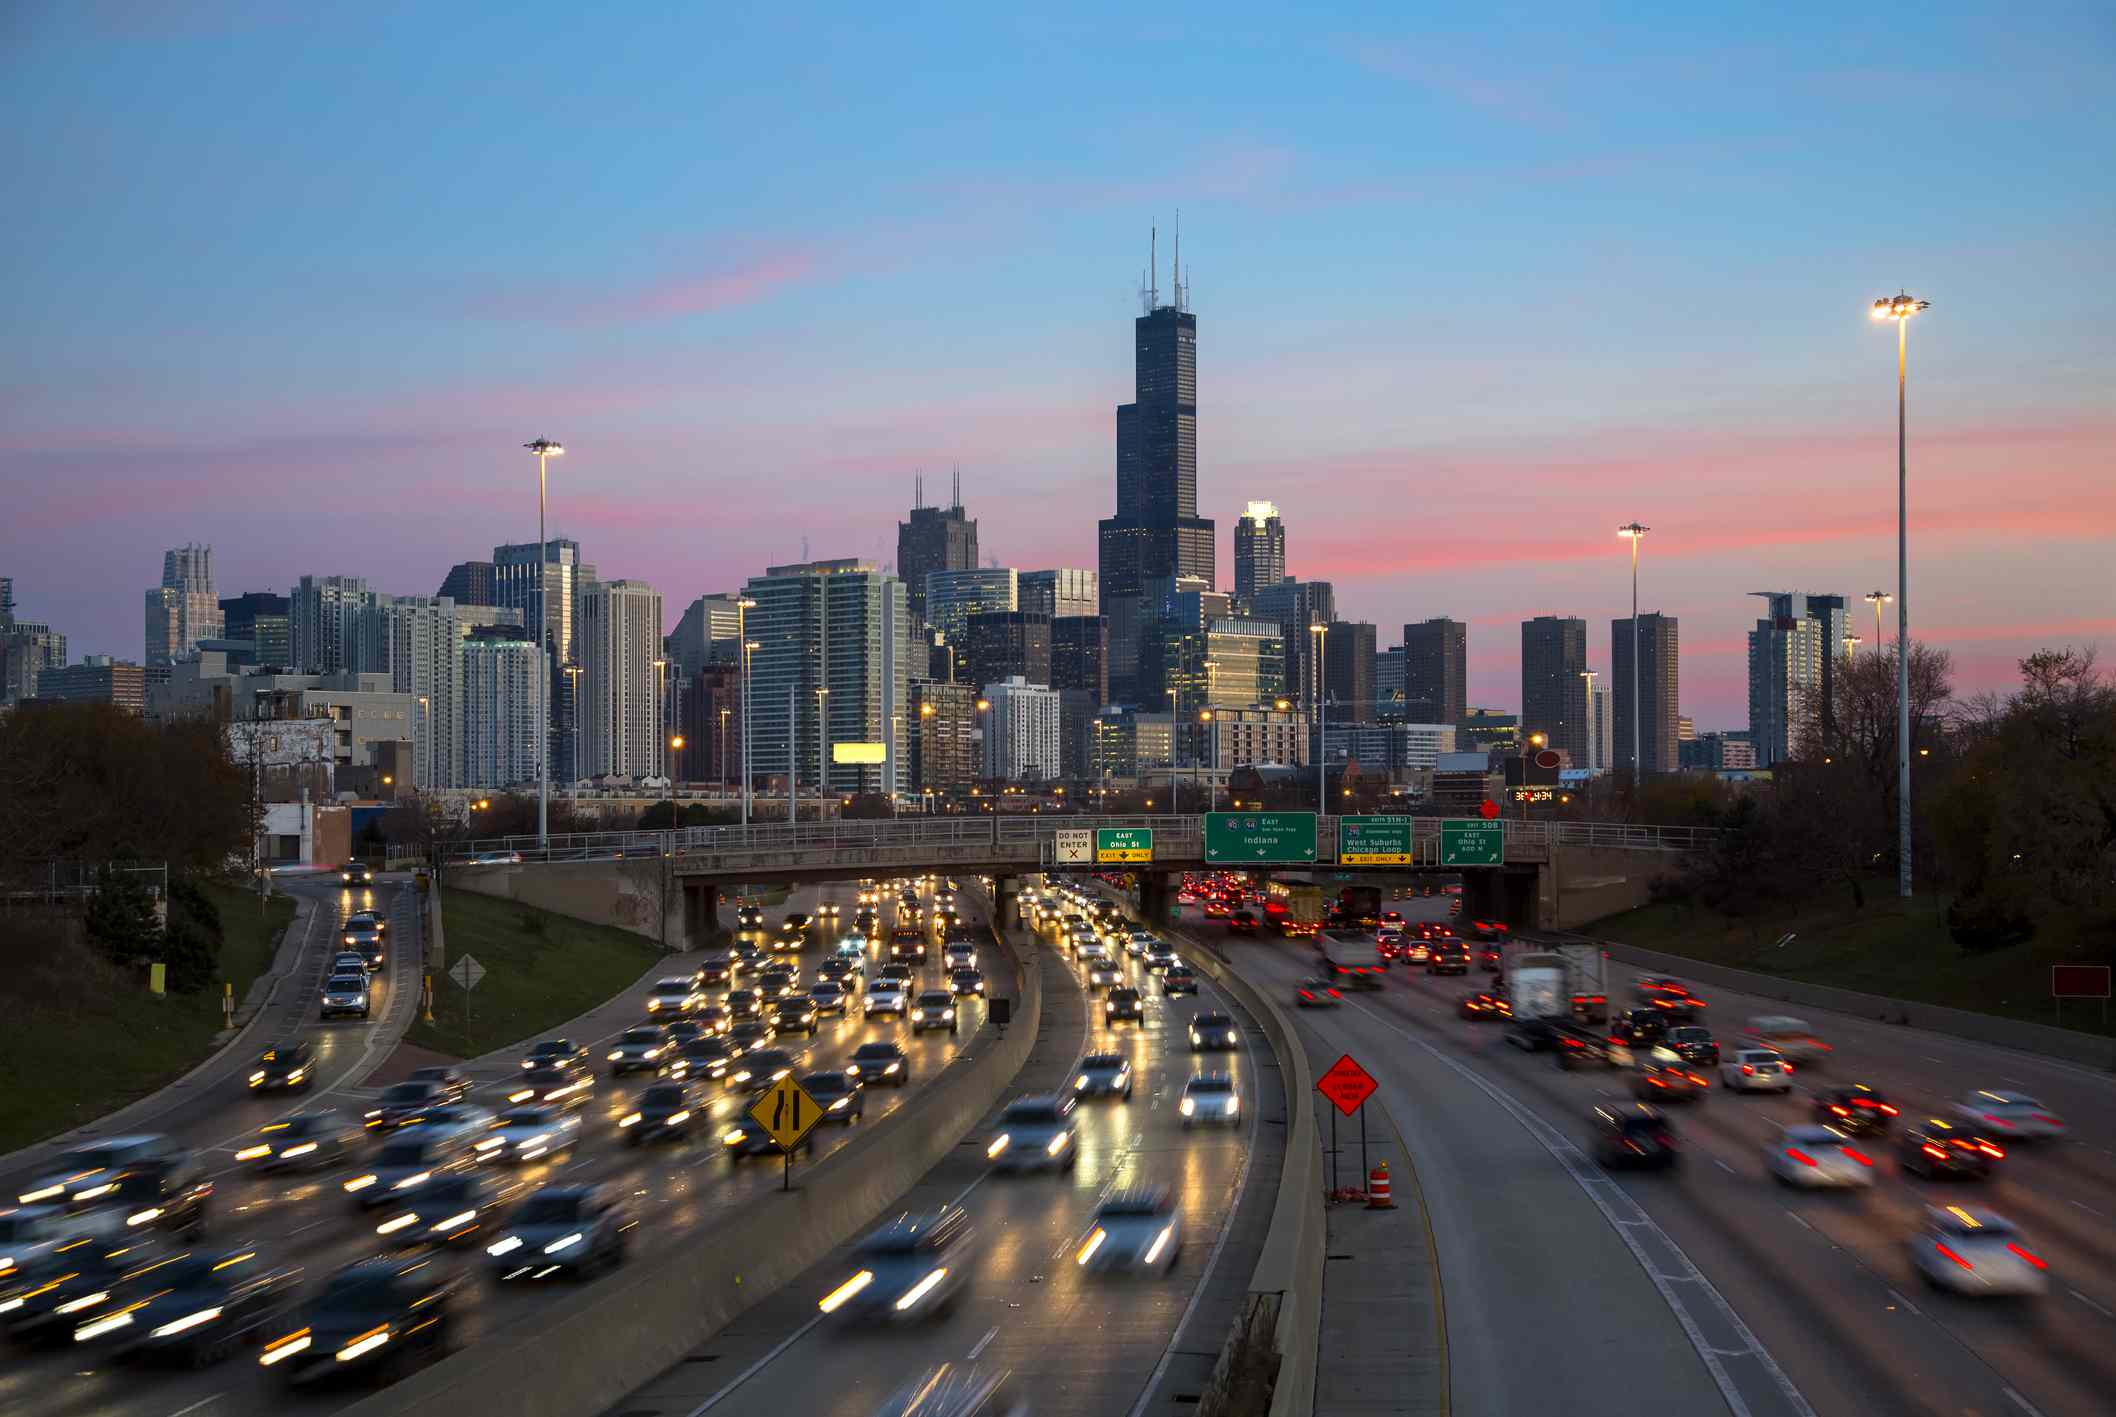 Aerial view of Chicago highway traffic at dusk